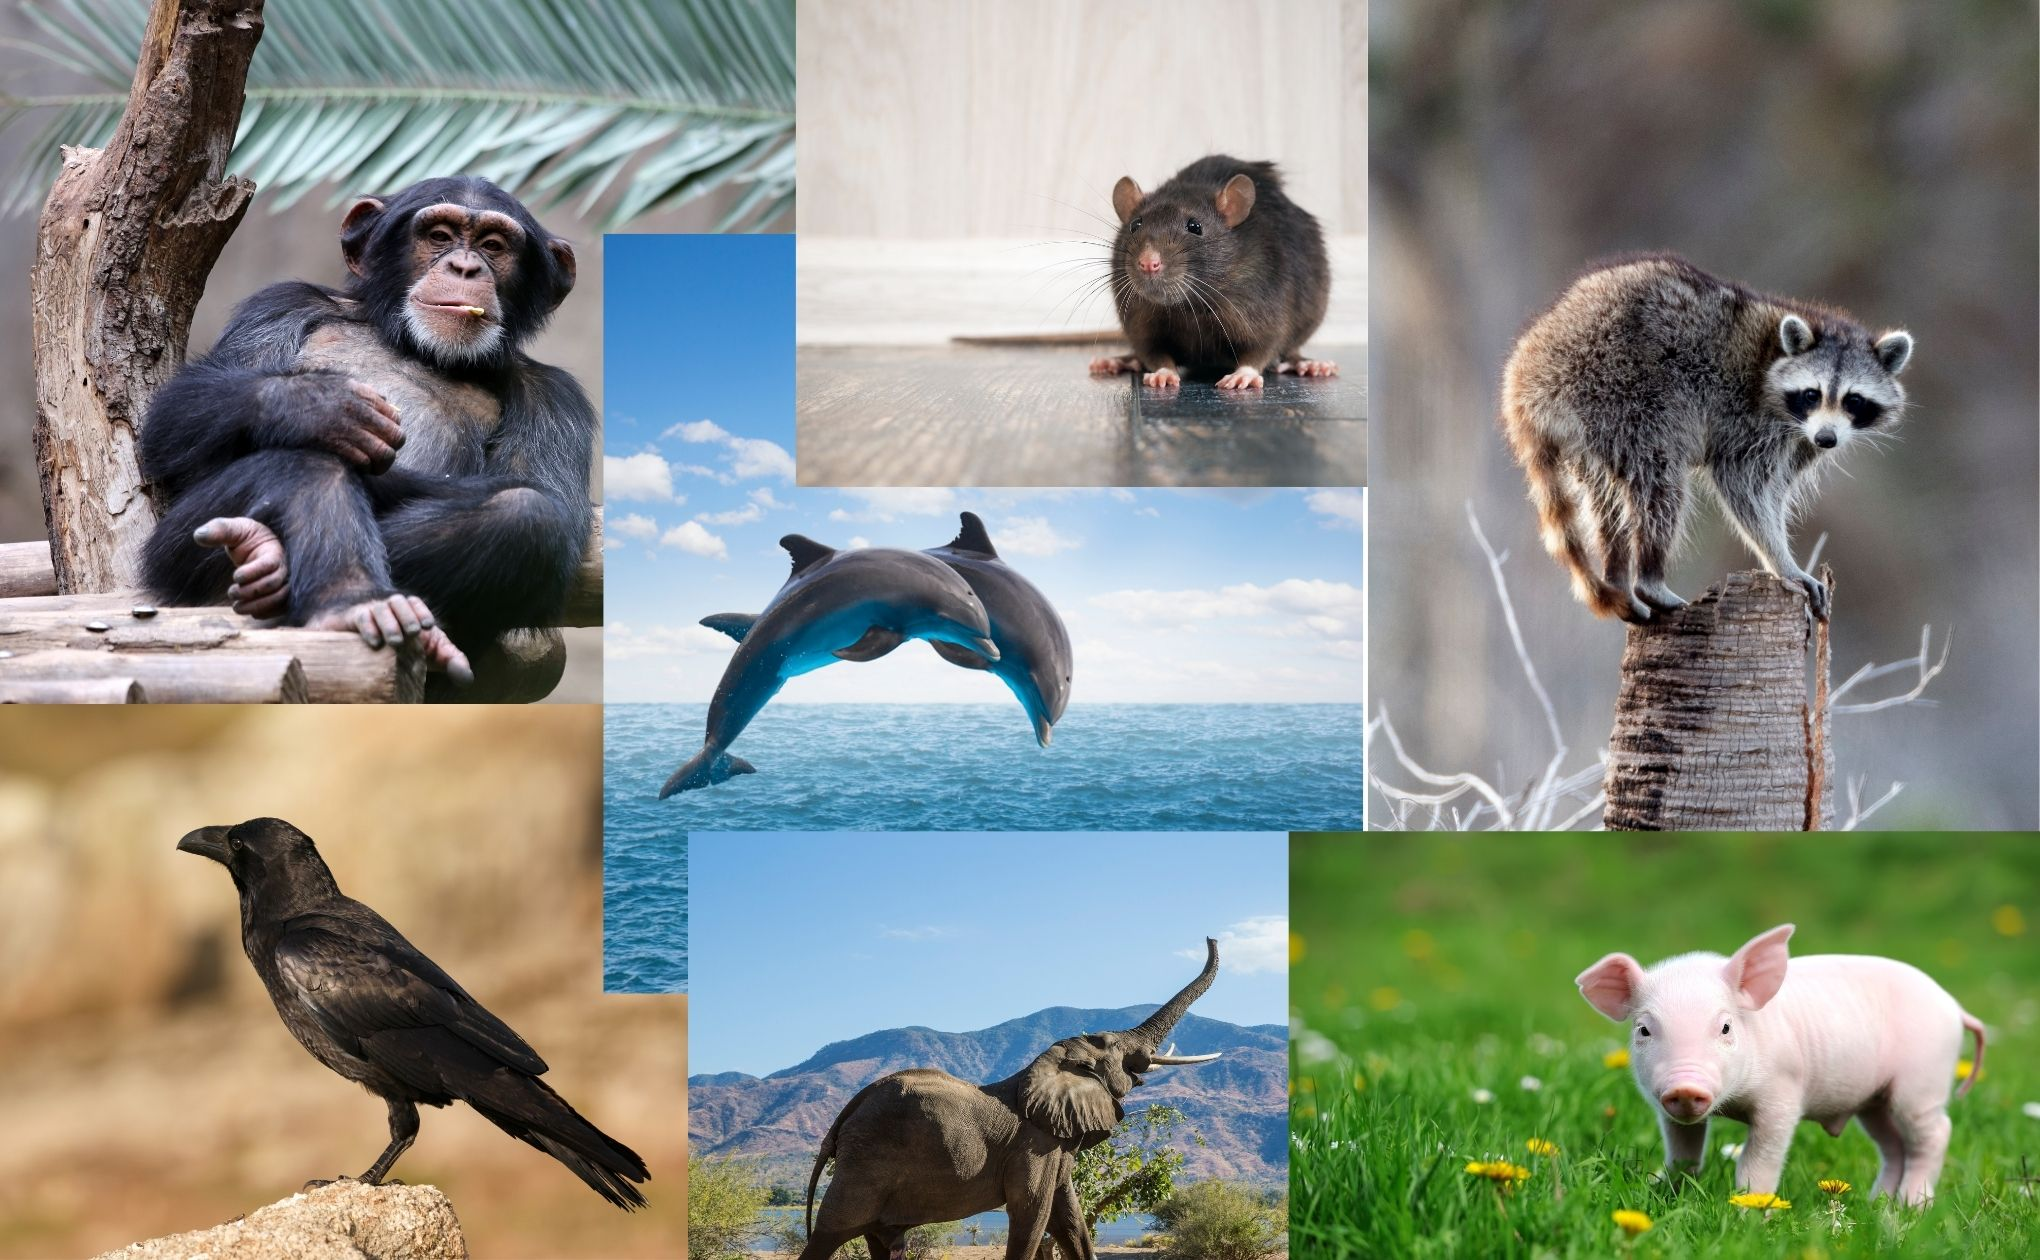 The Most Intelligent Animals After Human